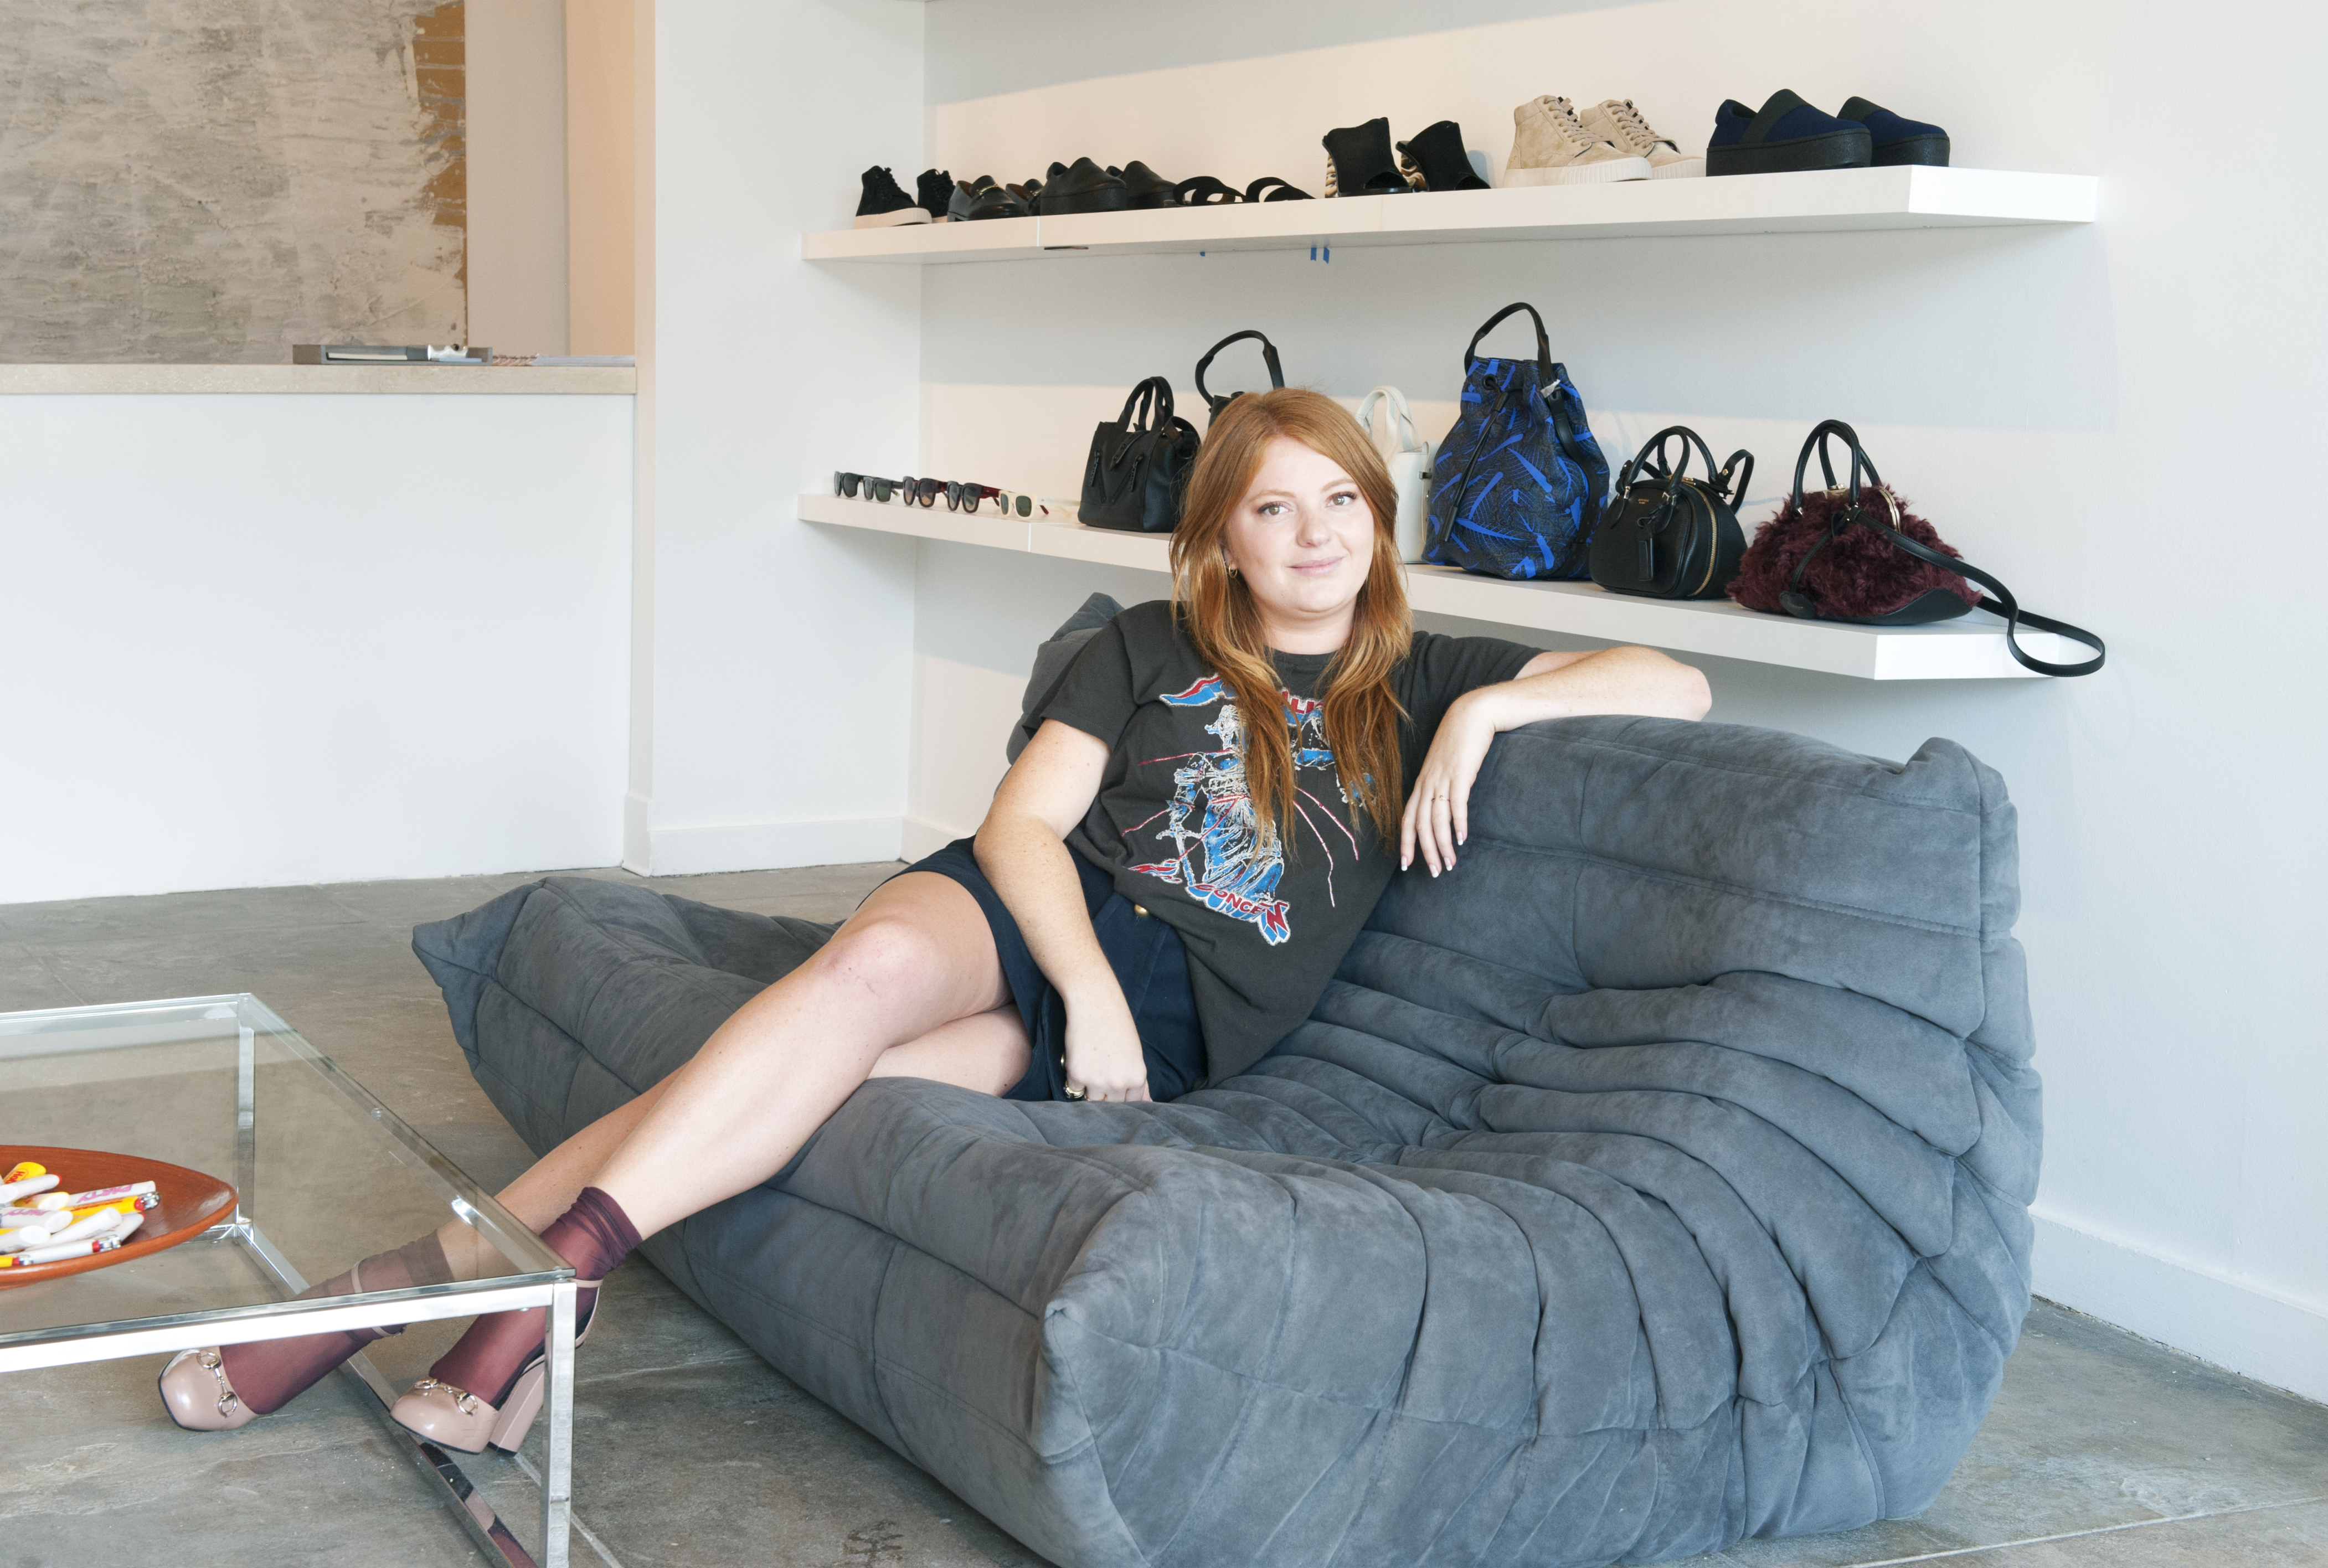 Shop Super Street's First Brick-and-Mortar Store on La Brea Merges High Fashion With Streetwear